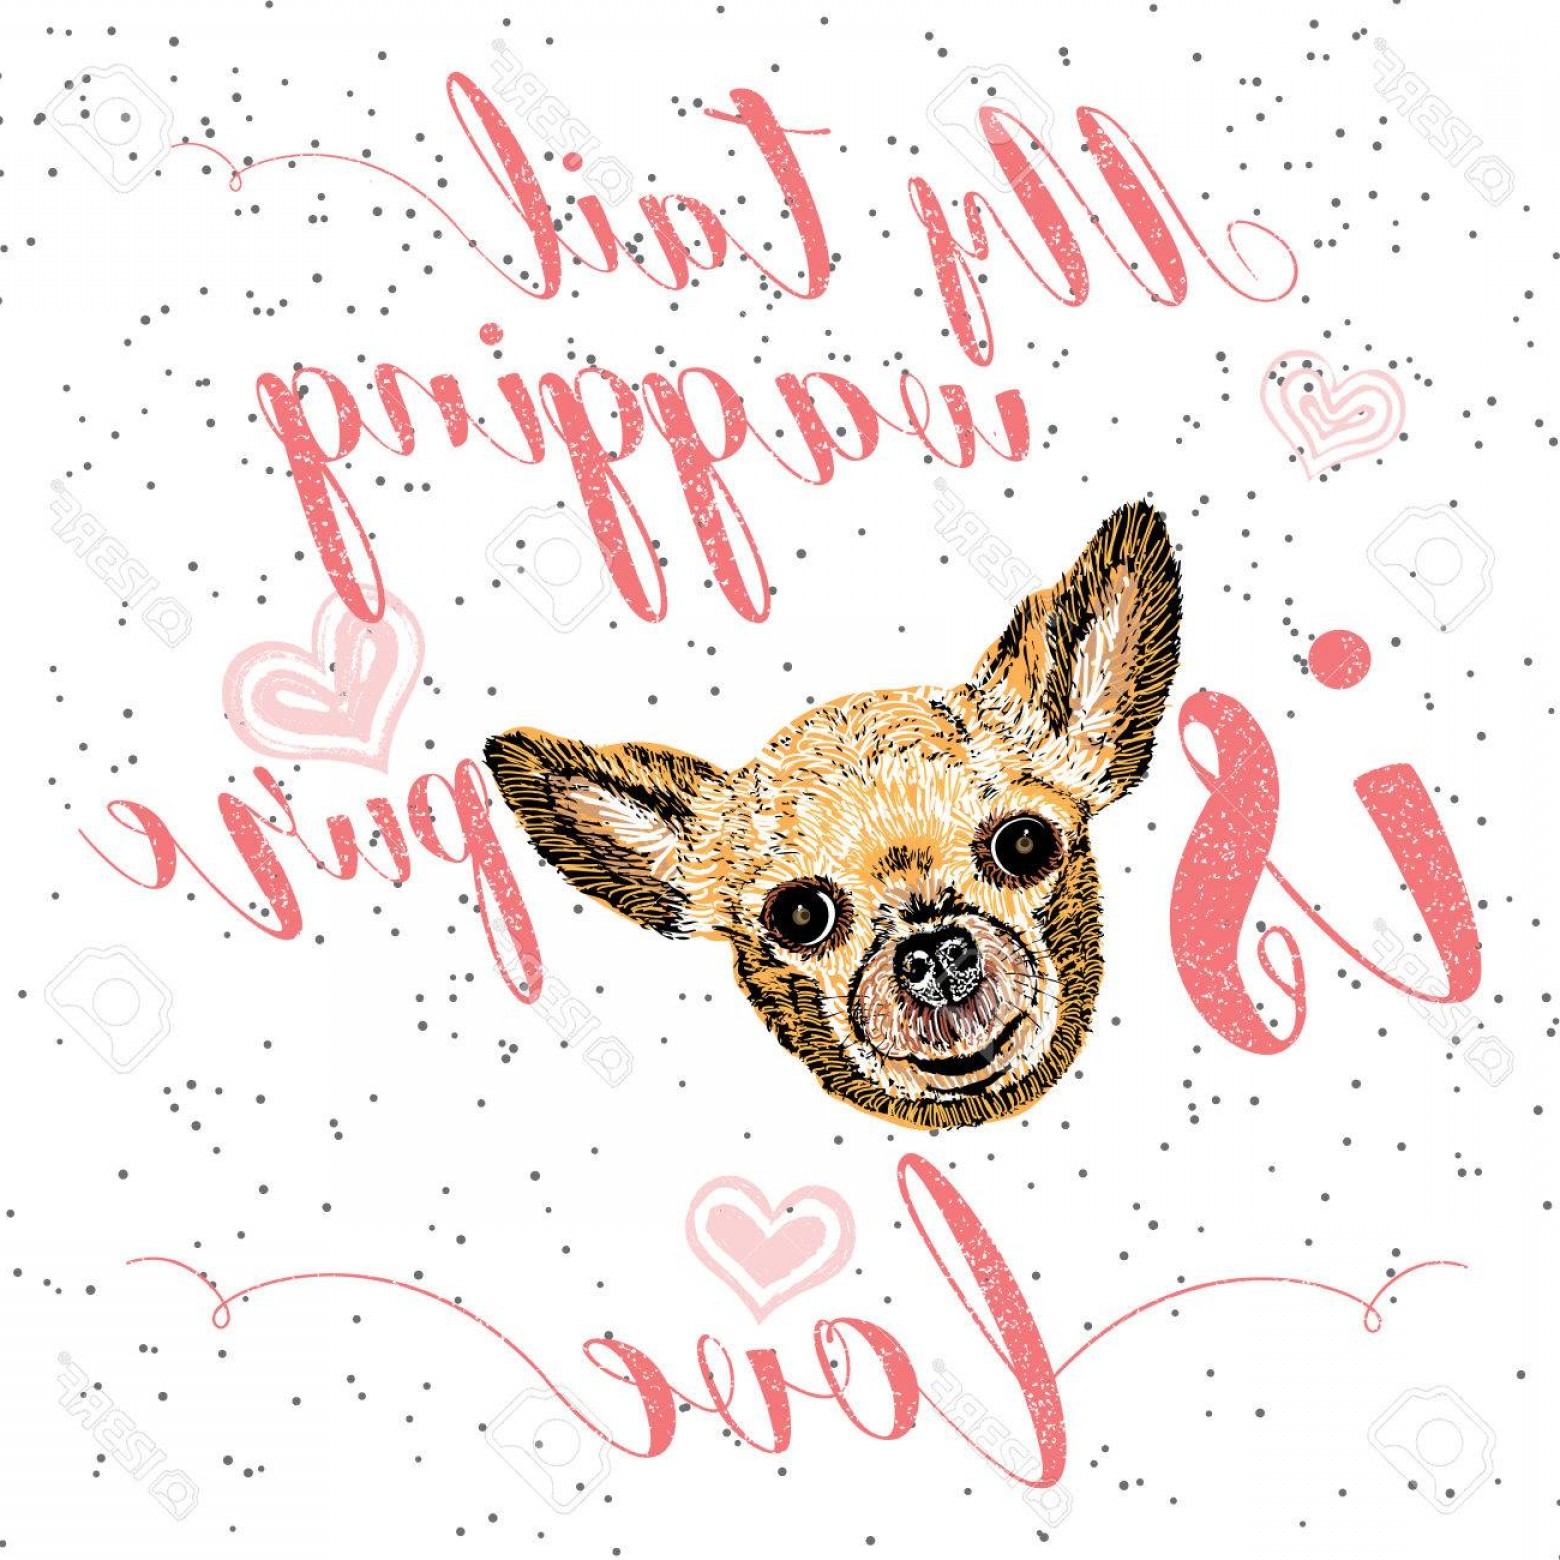 Love M J Vector: Photostock Vector Vector Illustration Of Cute Little Smiling Dog With My Tail Wagging Is Pure Love Lettering Calligrap